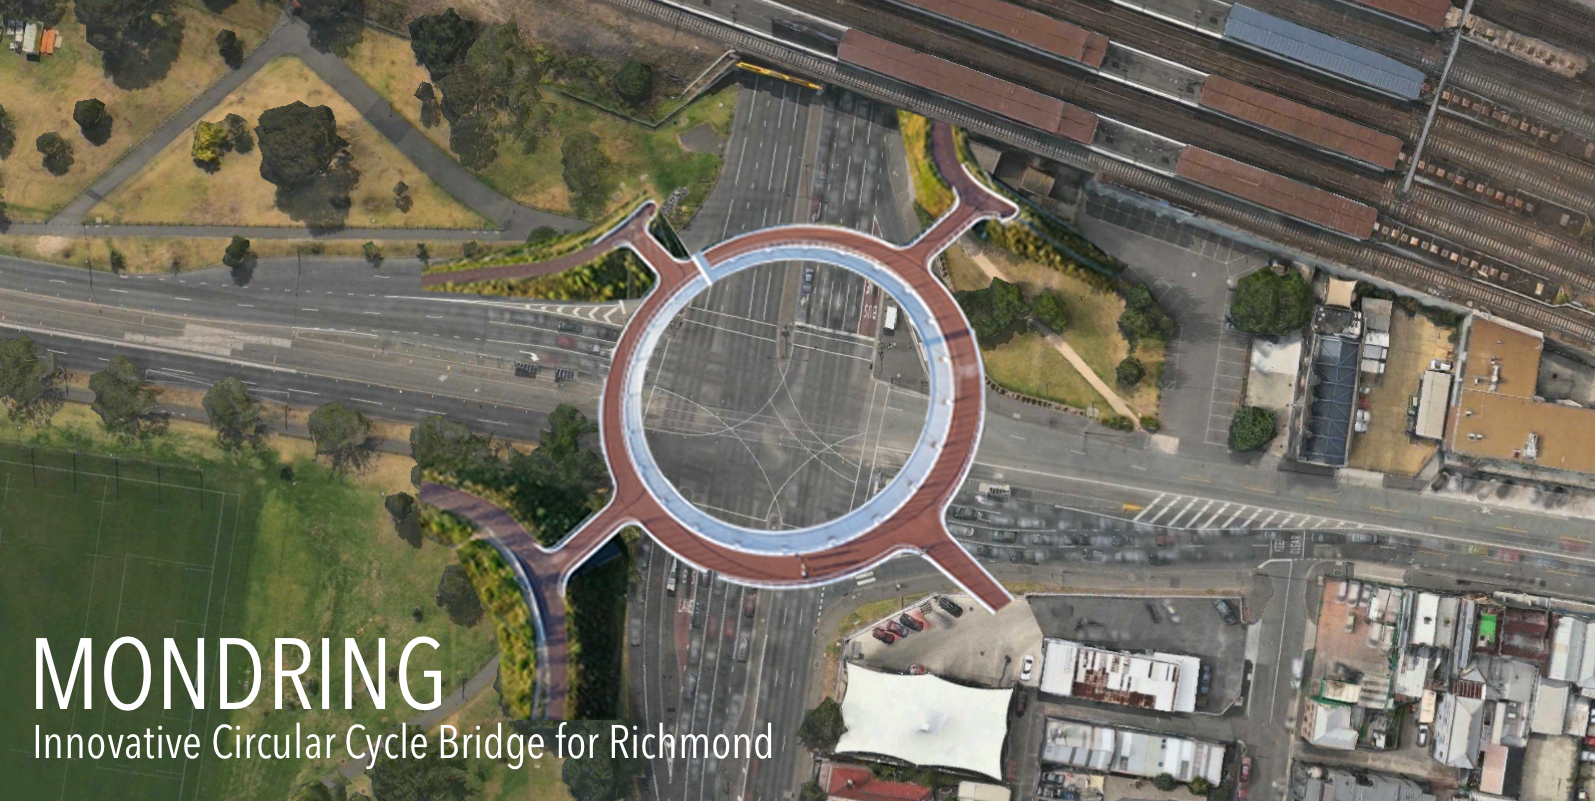 Mondring is an elevated path proposed for Richmond, based on the Hovenring in Eindhoven, The Netherlands. It's intended for the Punt Road / Swan Street intersection, complementing the proposed intersection redevelopment.